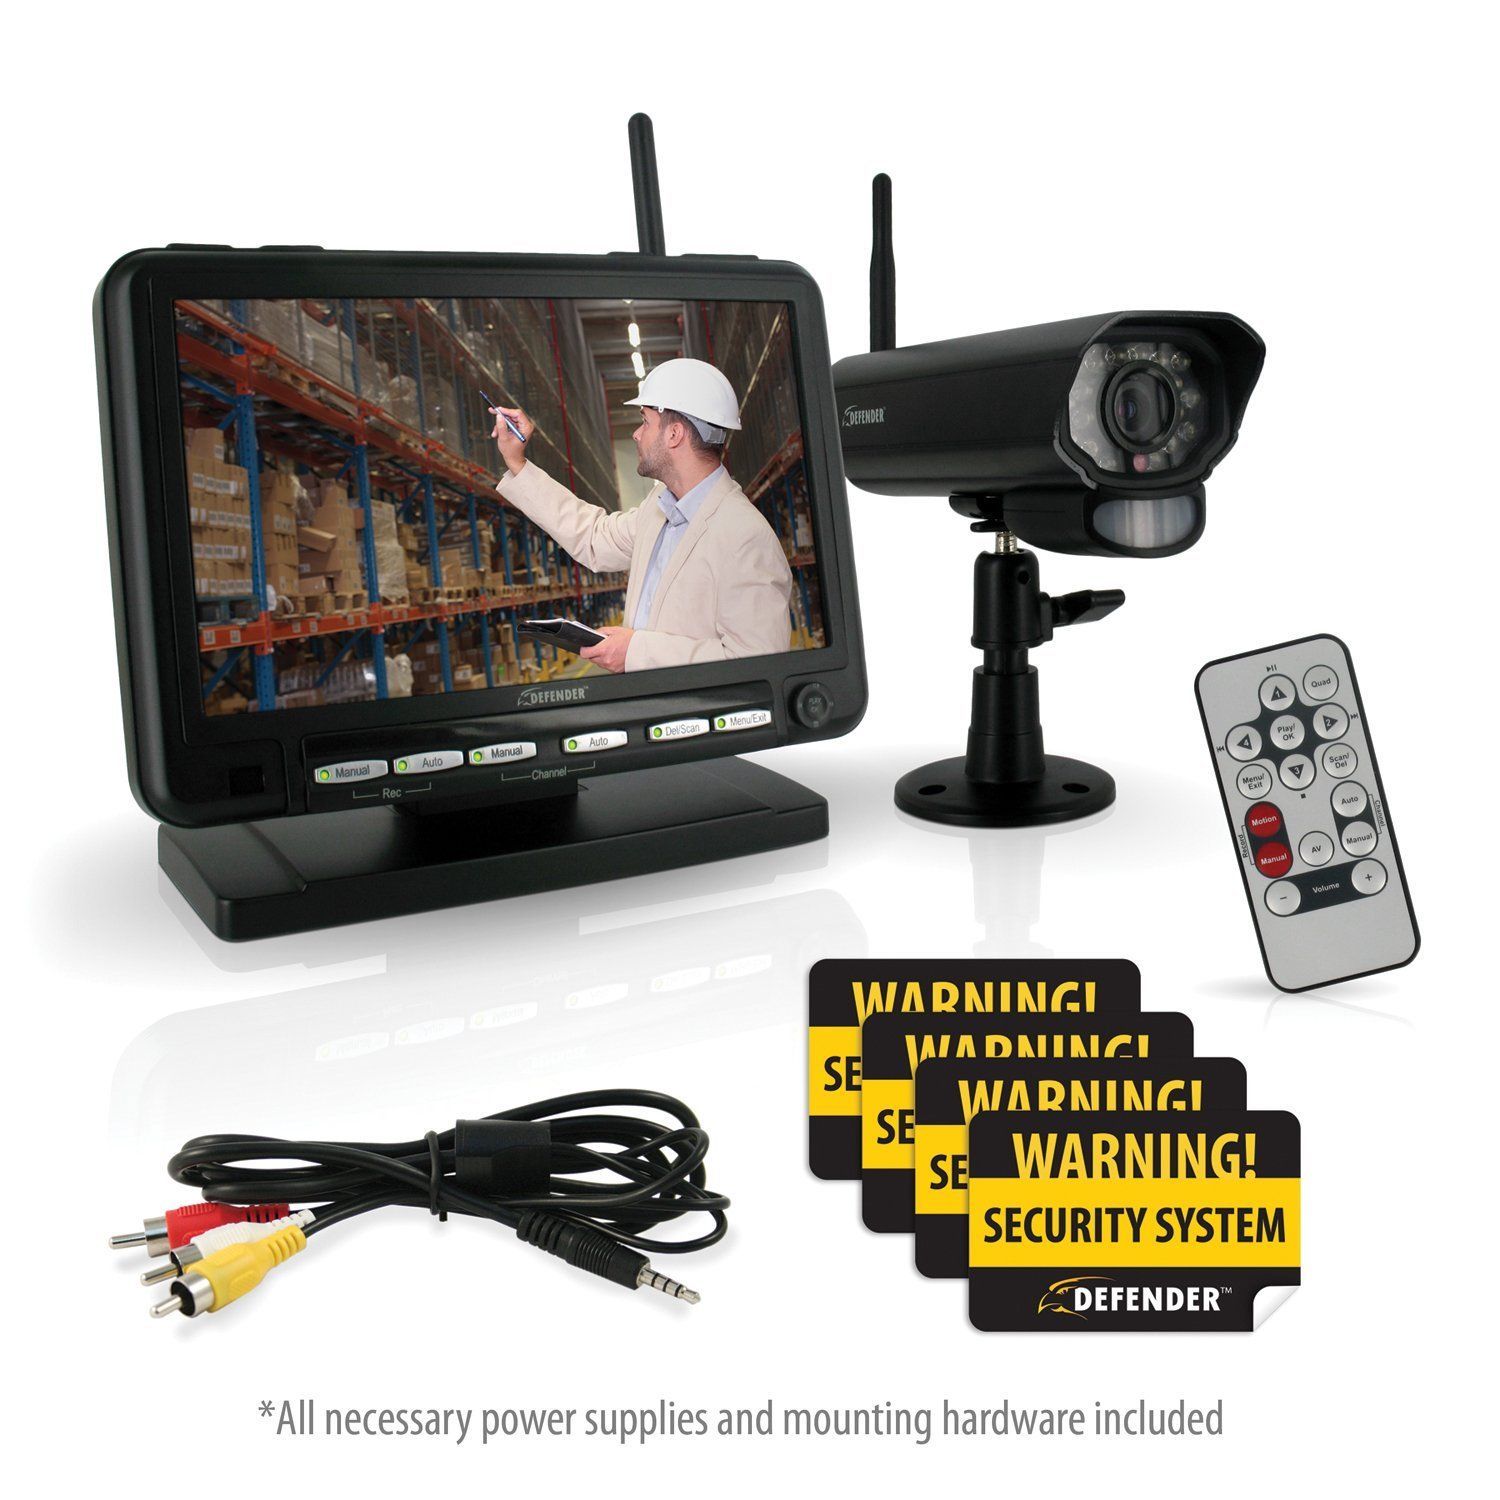 Defender PX301010 Digital Wireless DVR Security System